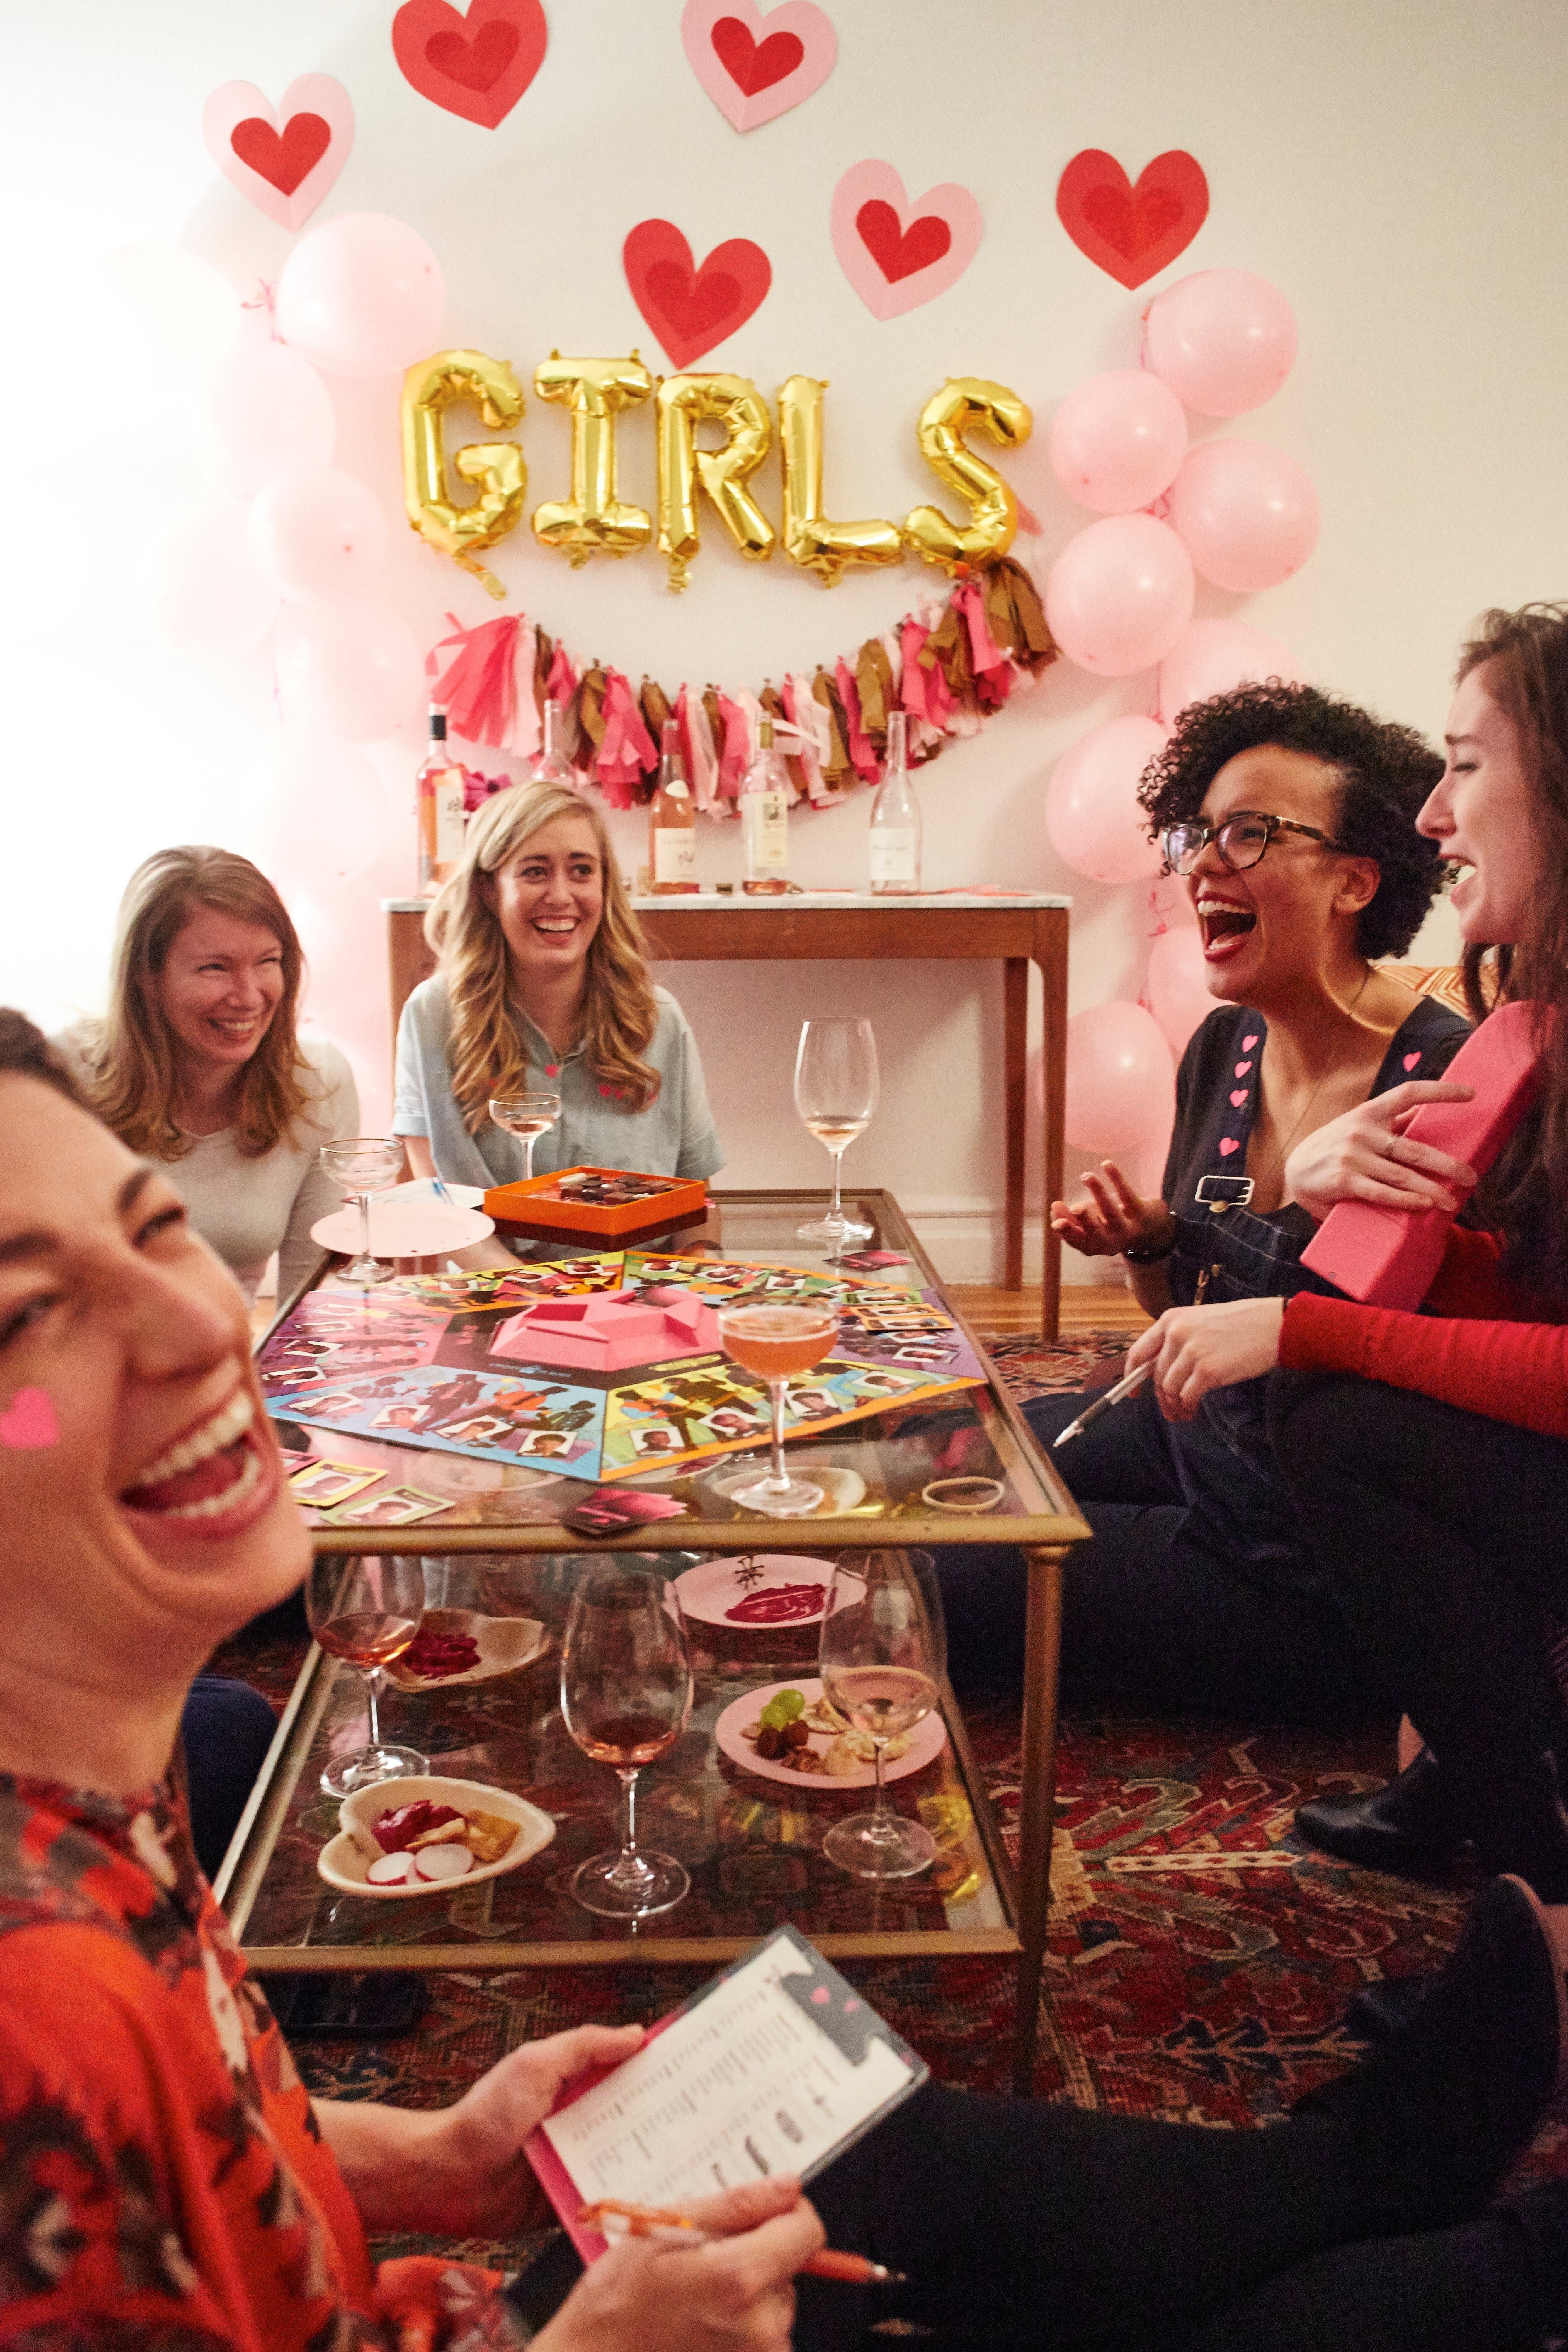 13 Sweets To Share With Your Bff This Galentines Day